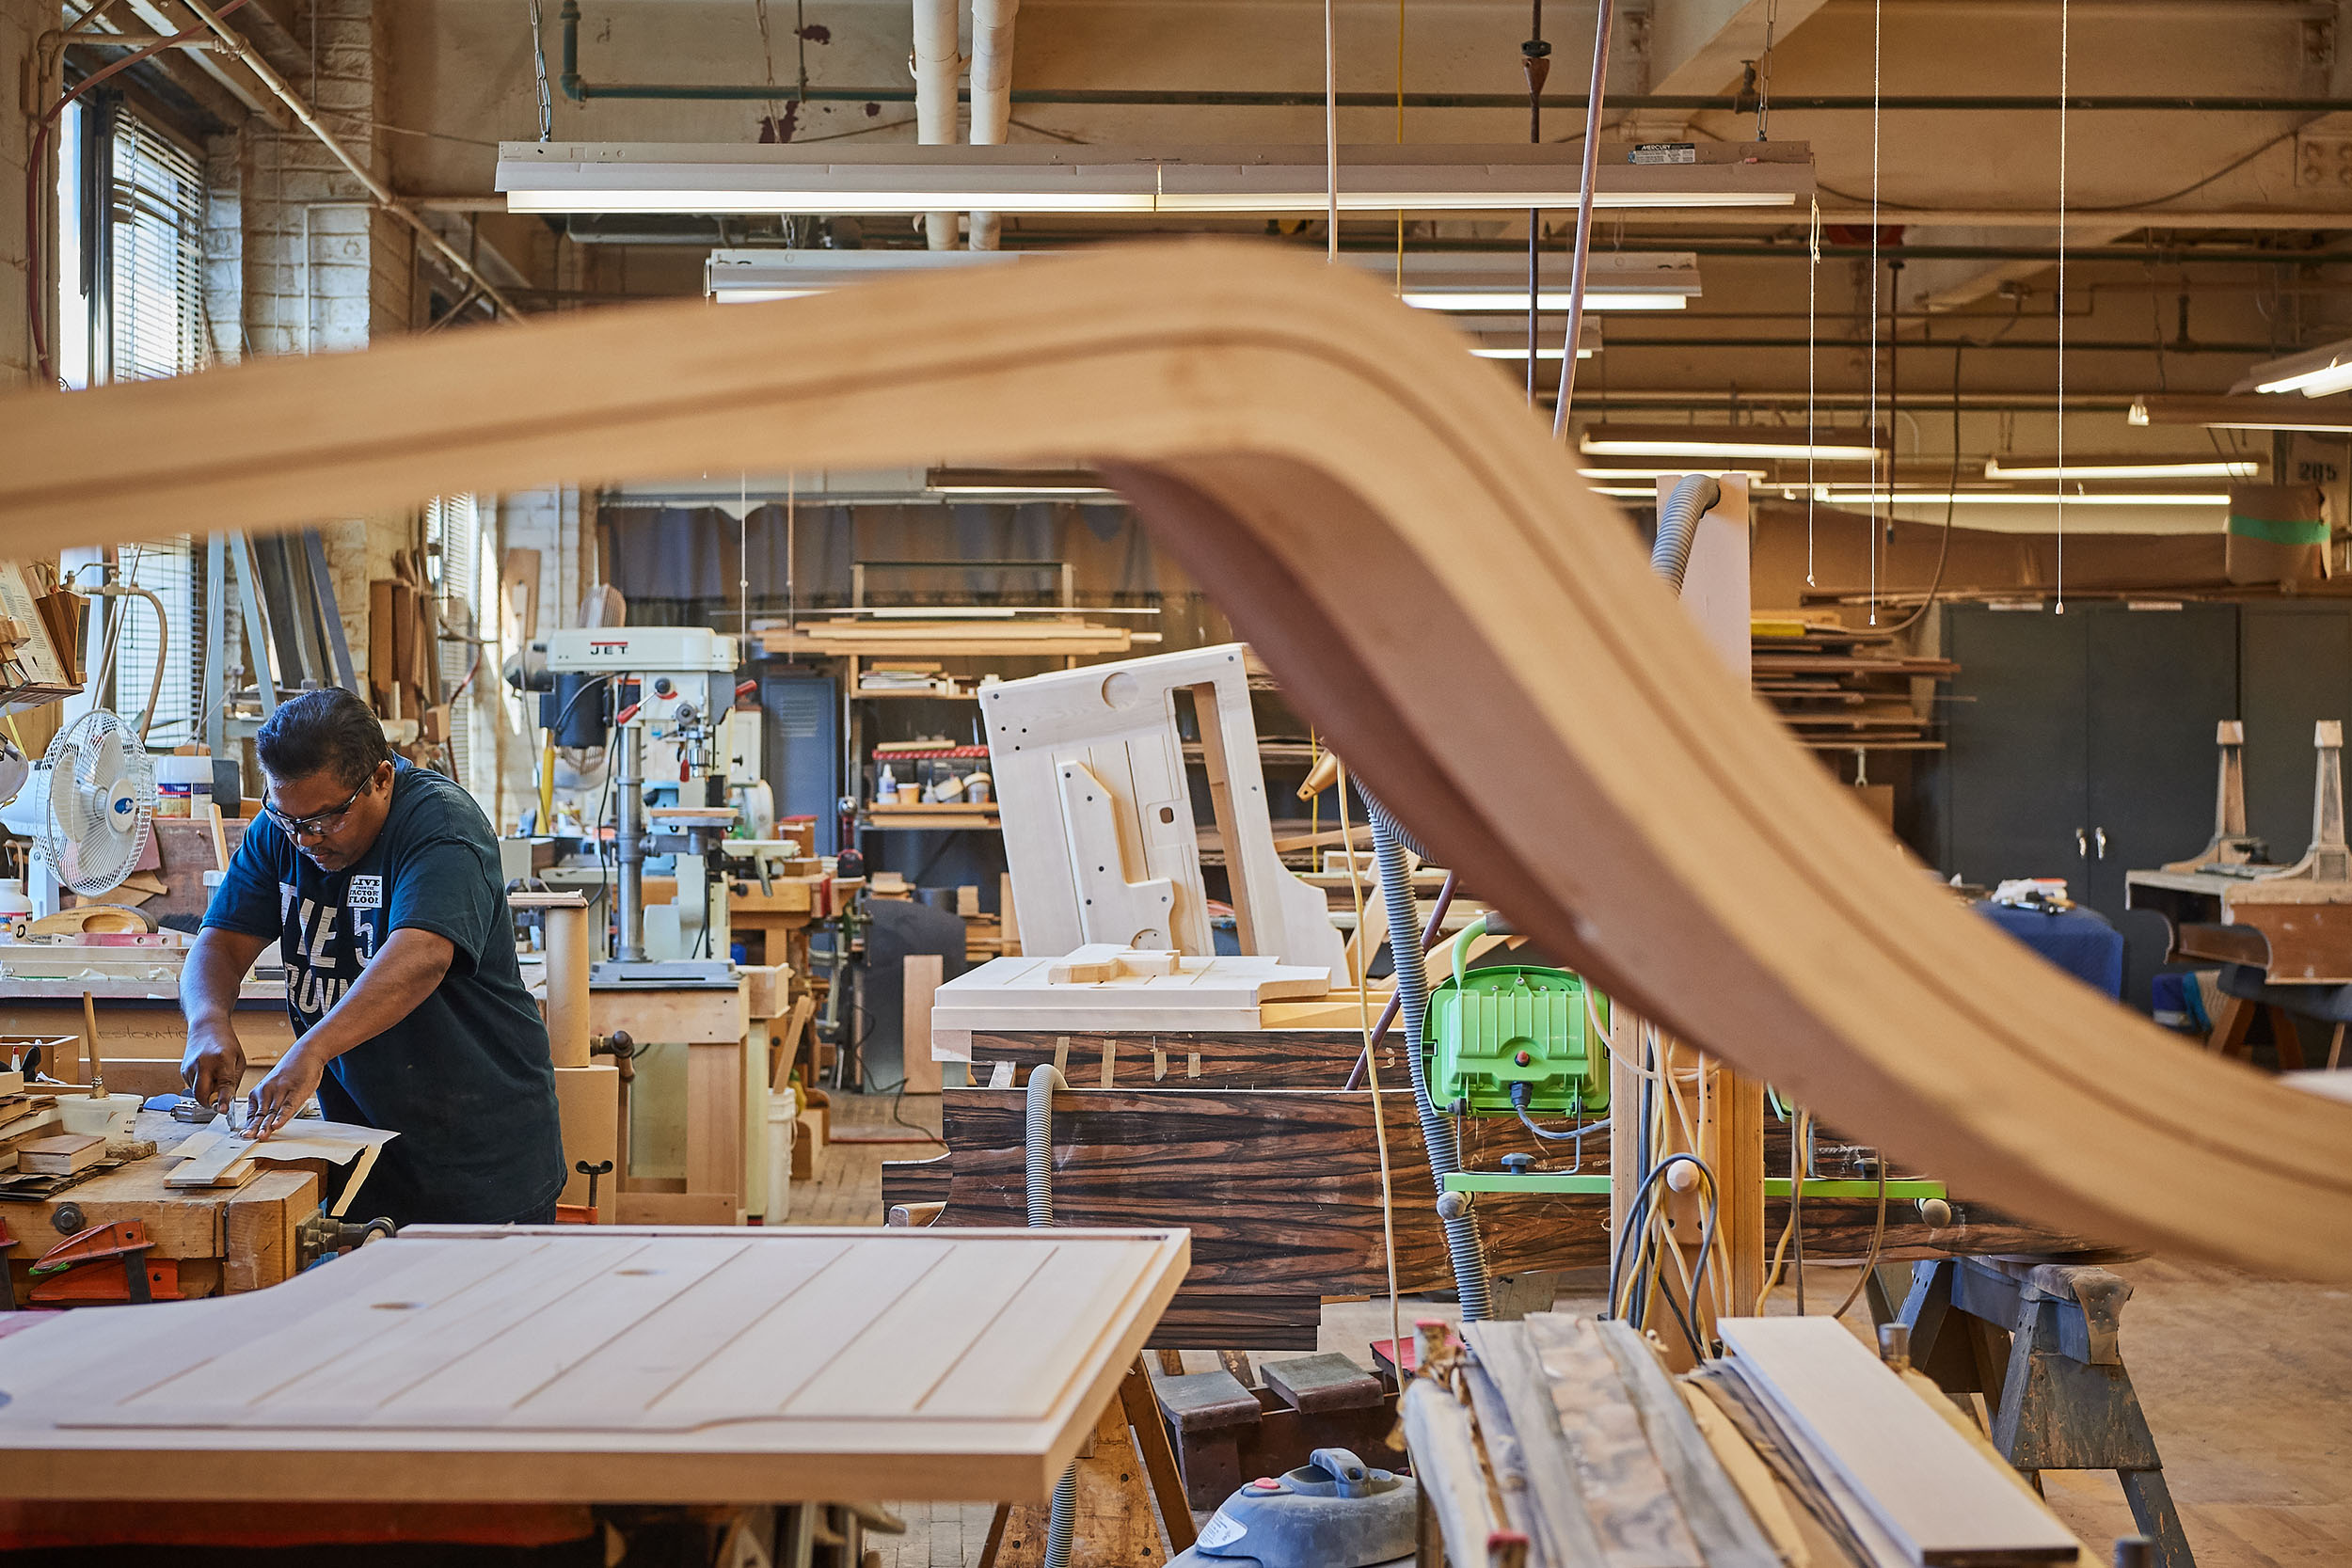 A craftsman cuts laminate before gluing it to a piano at the Steinway & Sons factory